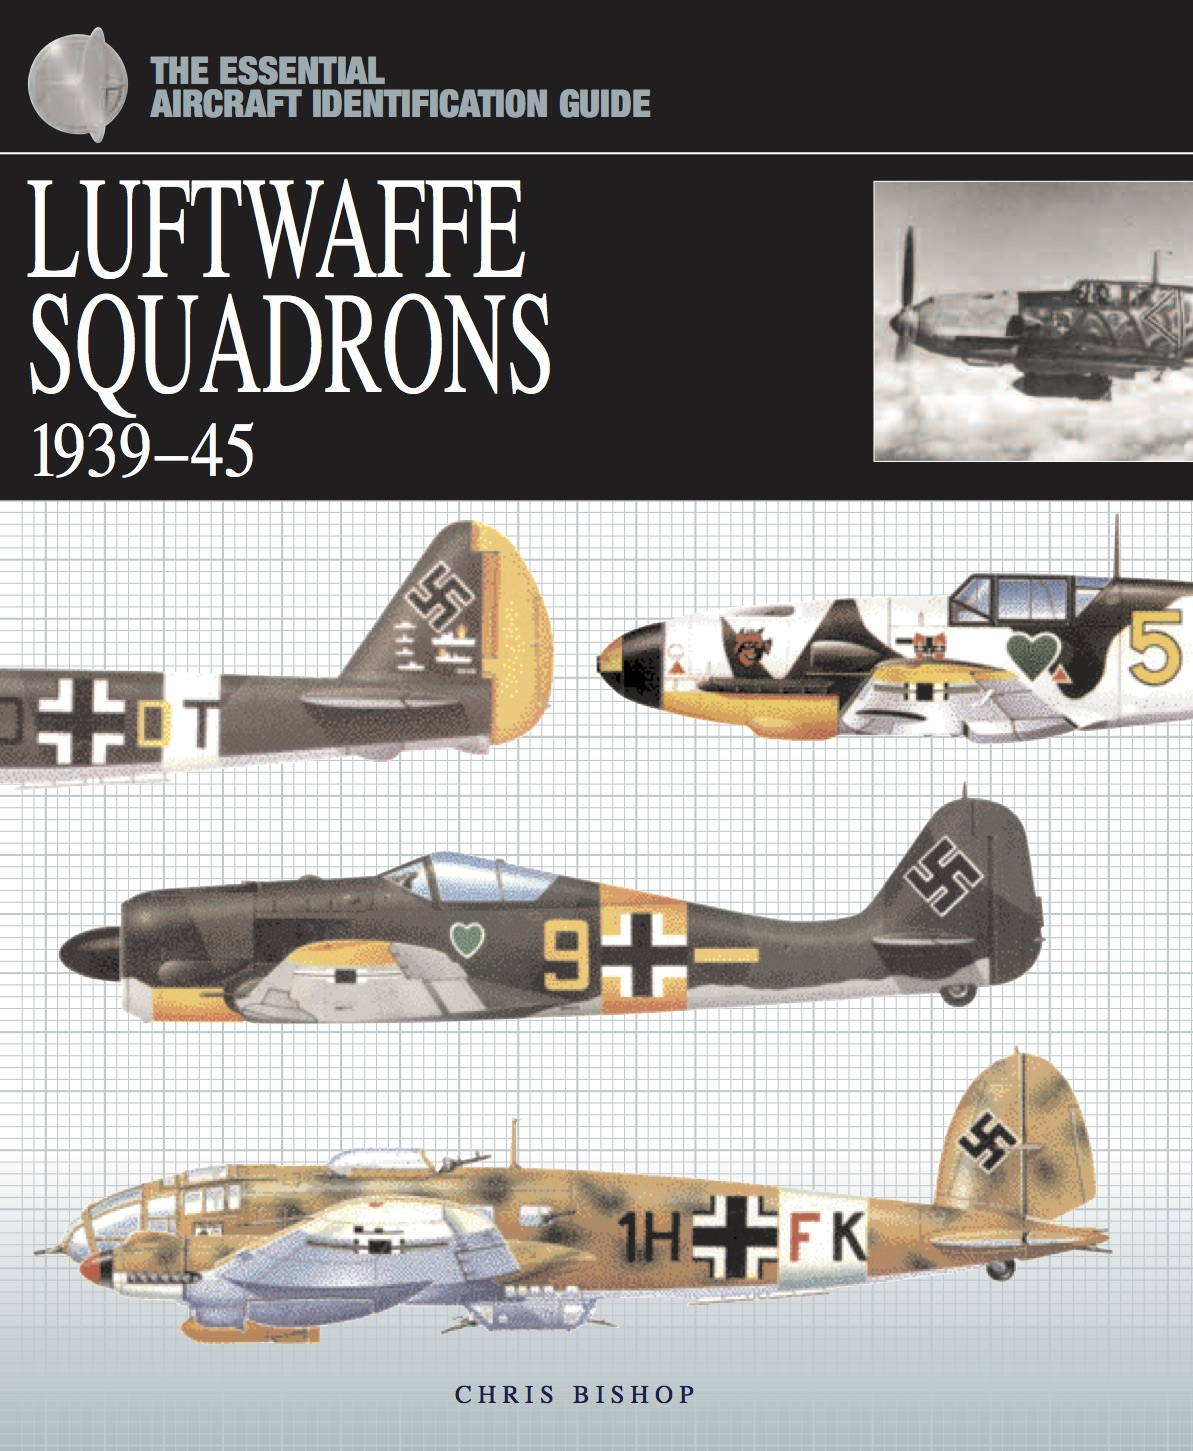 Luftwaffe Squadrons: The Essential Aircraft Identification Guide